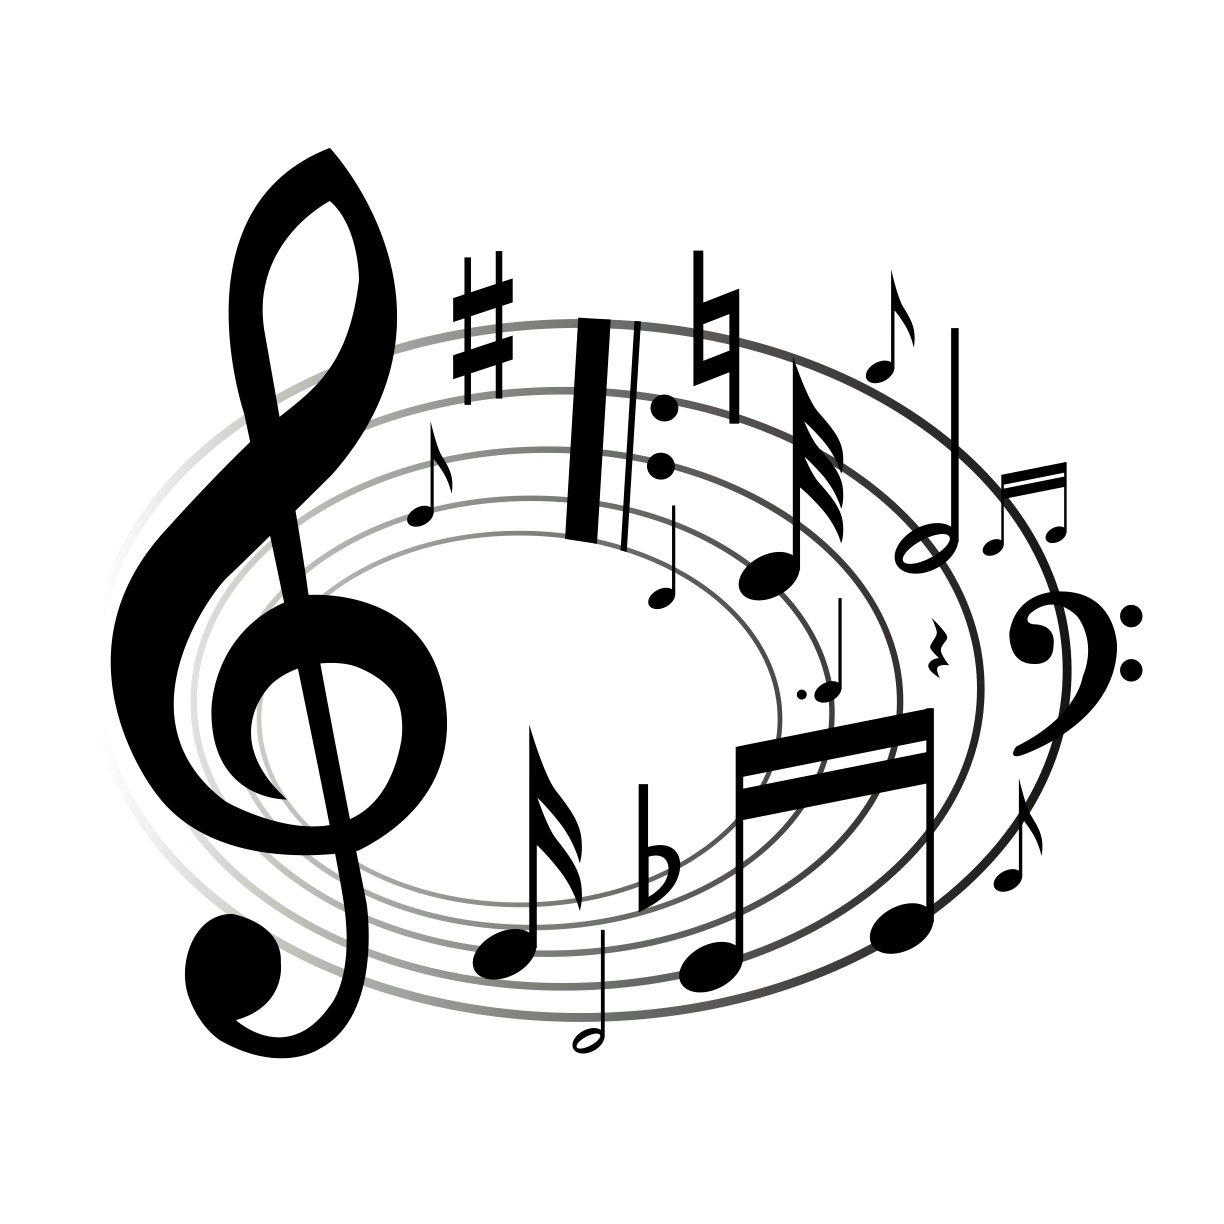 music emblems clipart - photo #2